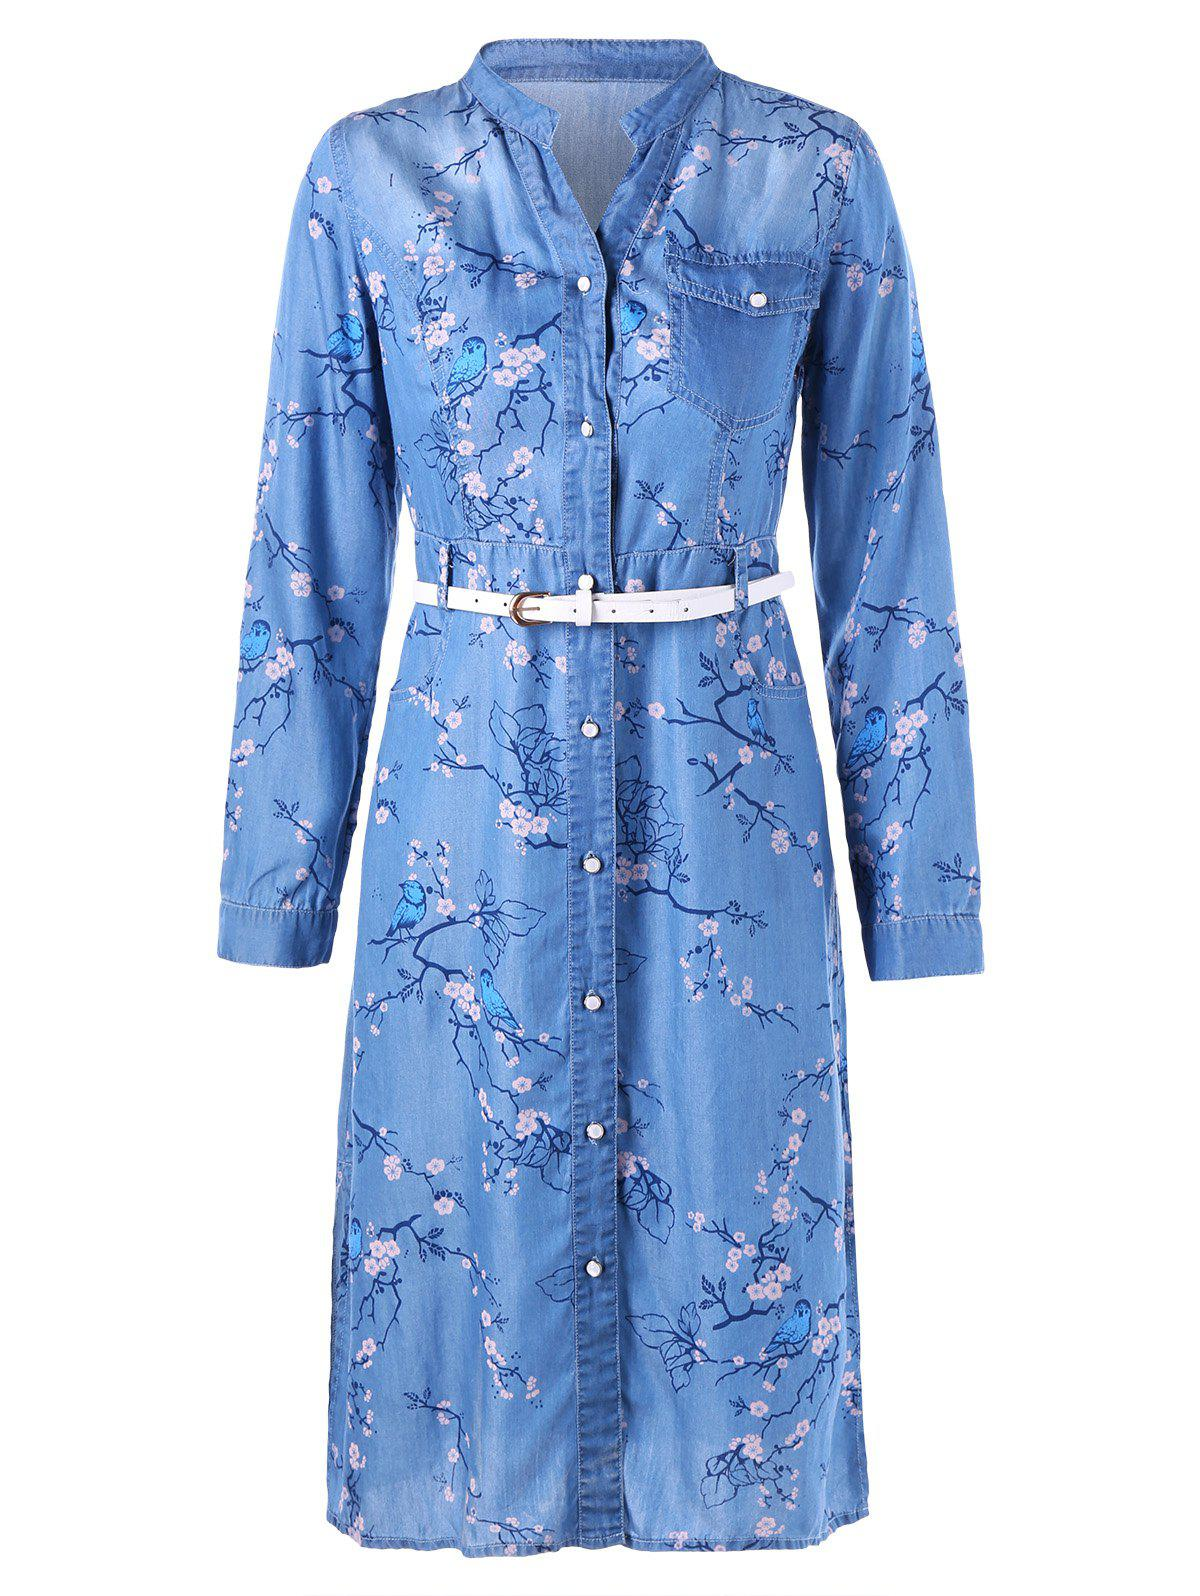 Plum Blossom Print Denim Dress with Belt - BLUE XL